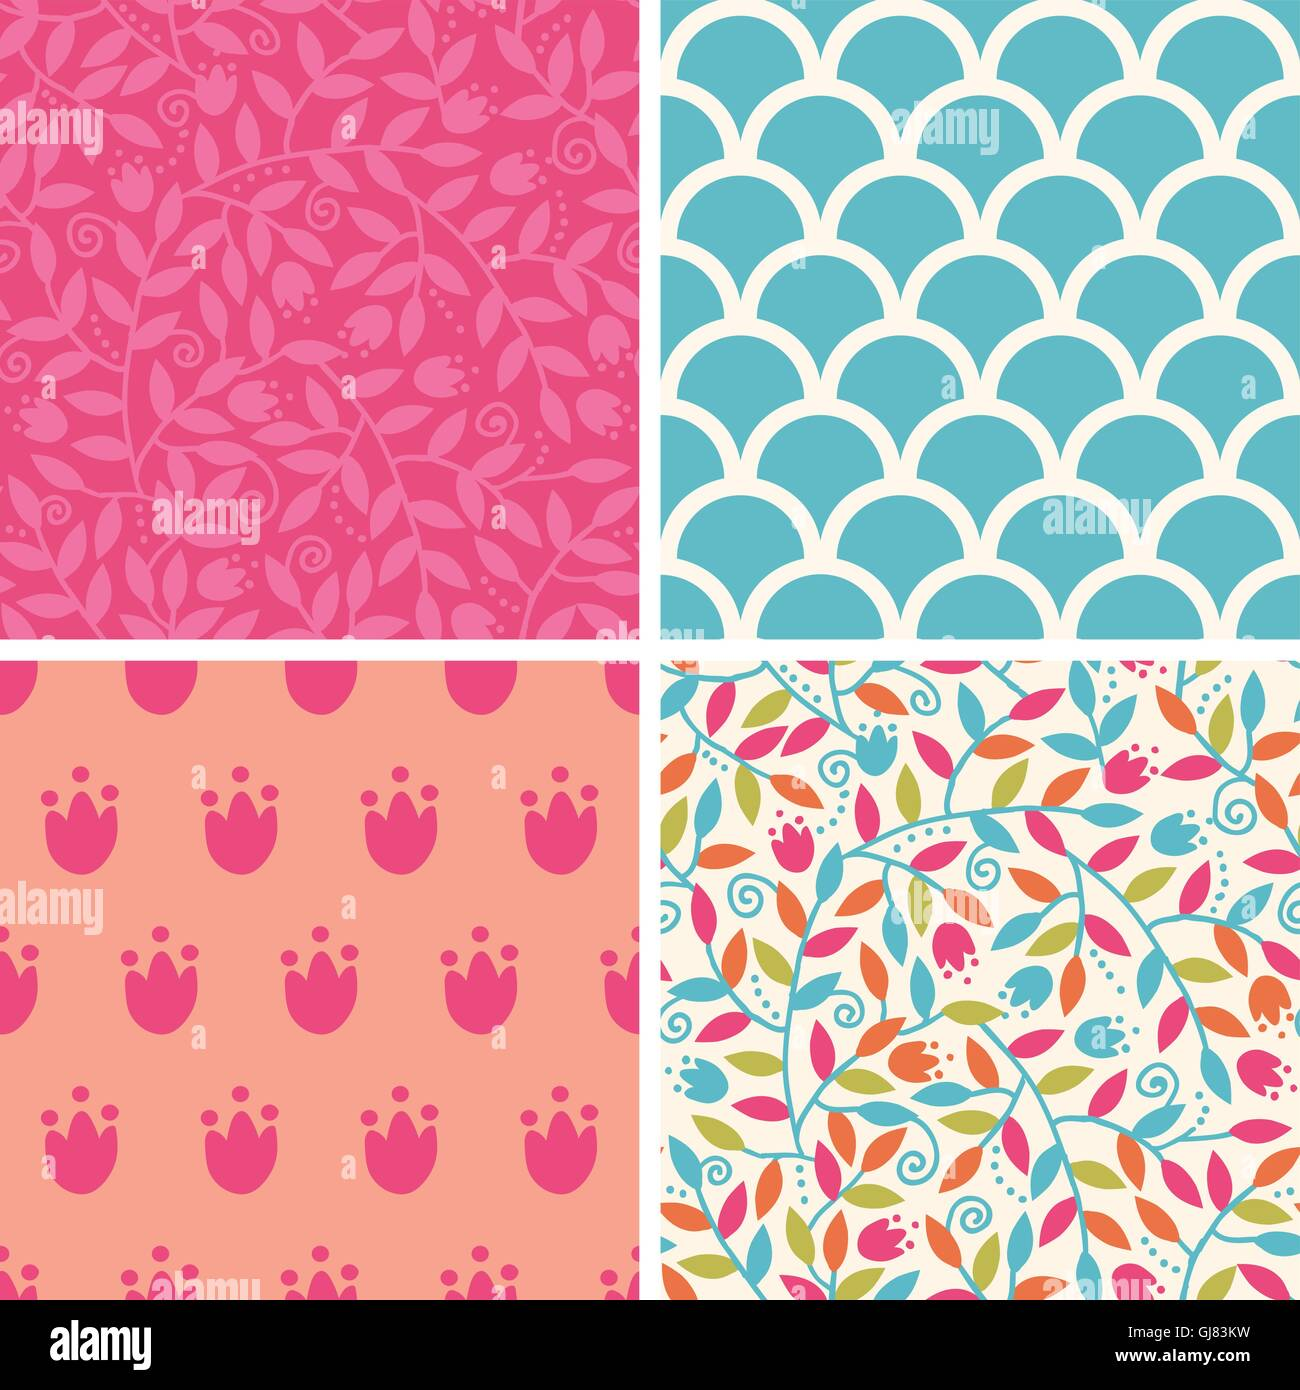 Vector colorful branches set of four matching repeating patterns - Stock Image